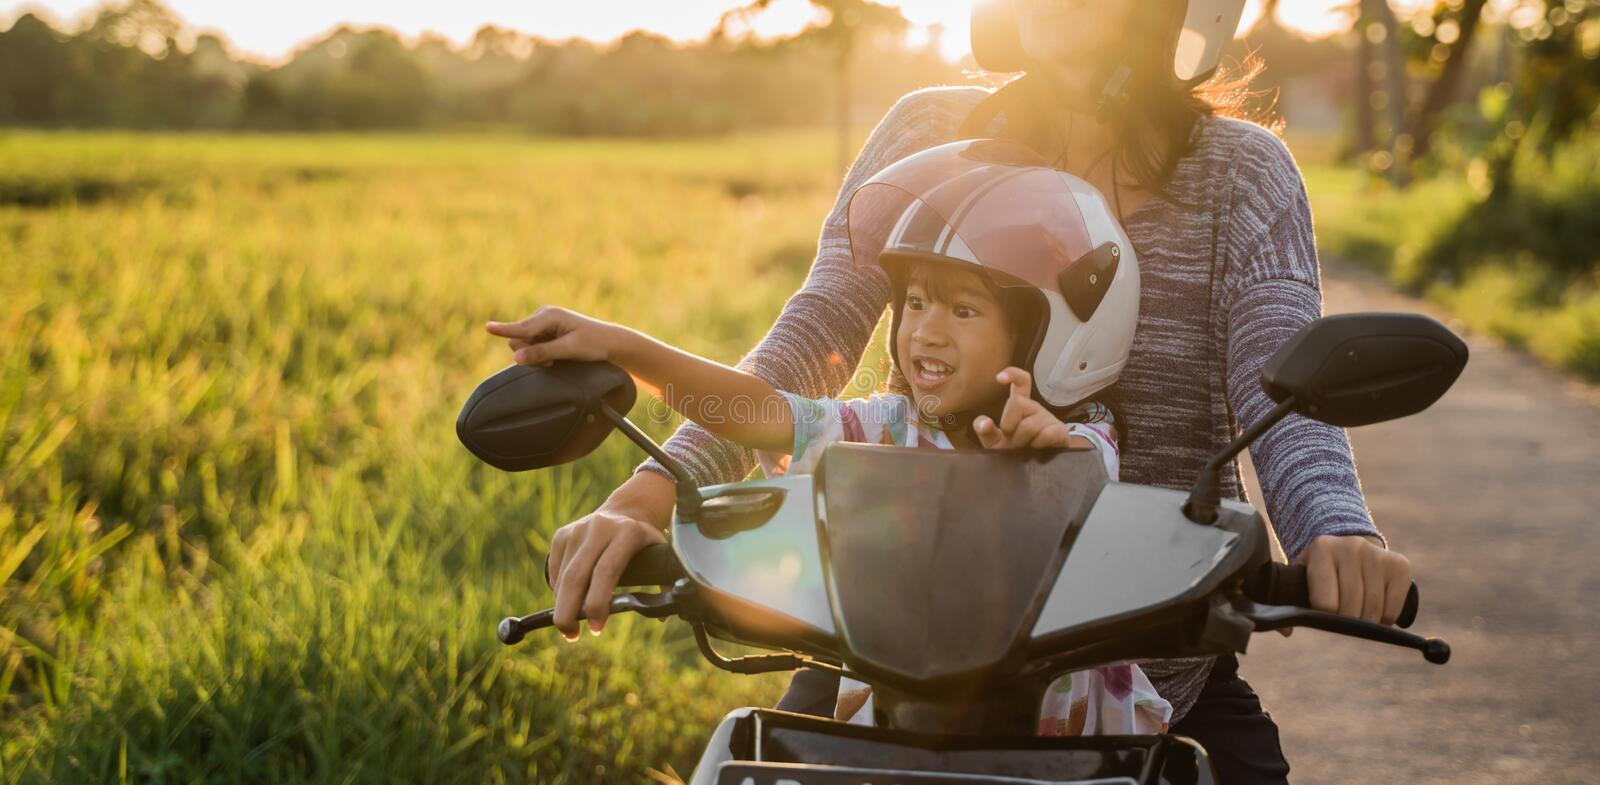 Mom and child enjoy riding motorcycle scooter royalty free stock photo